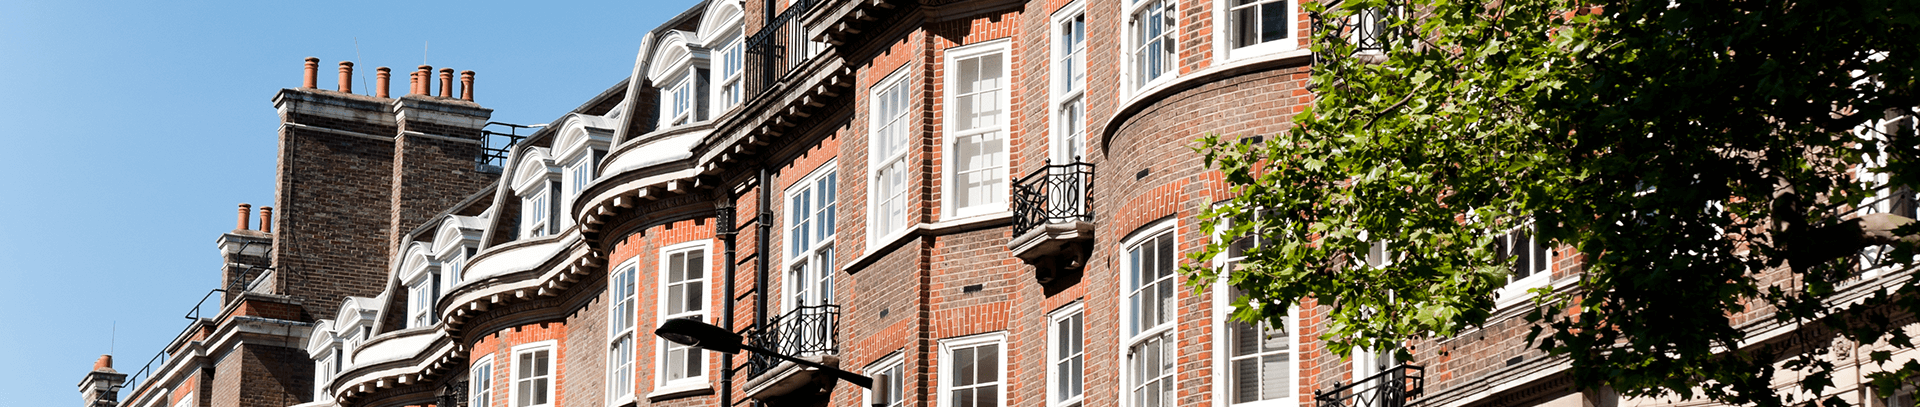 Planning Permissions Indemnity Insurance | Lawsure